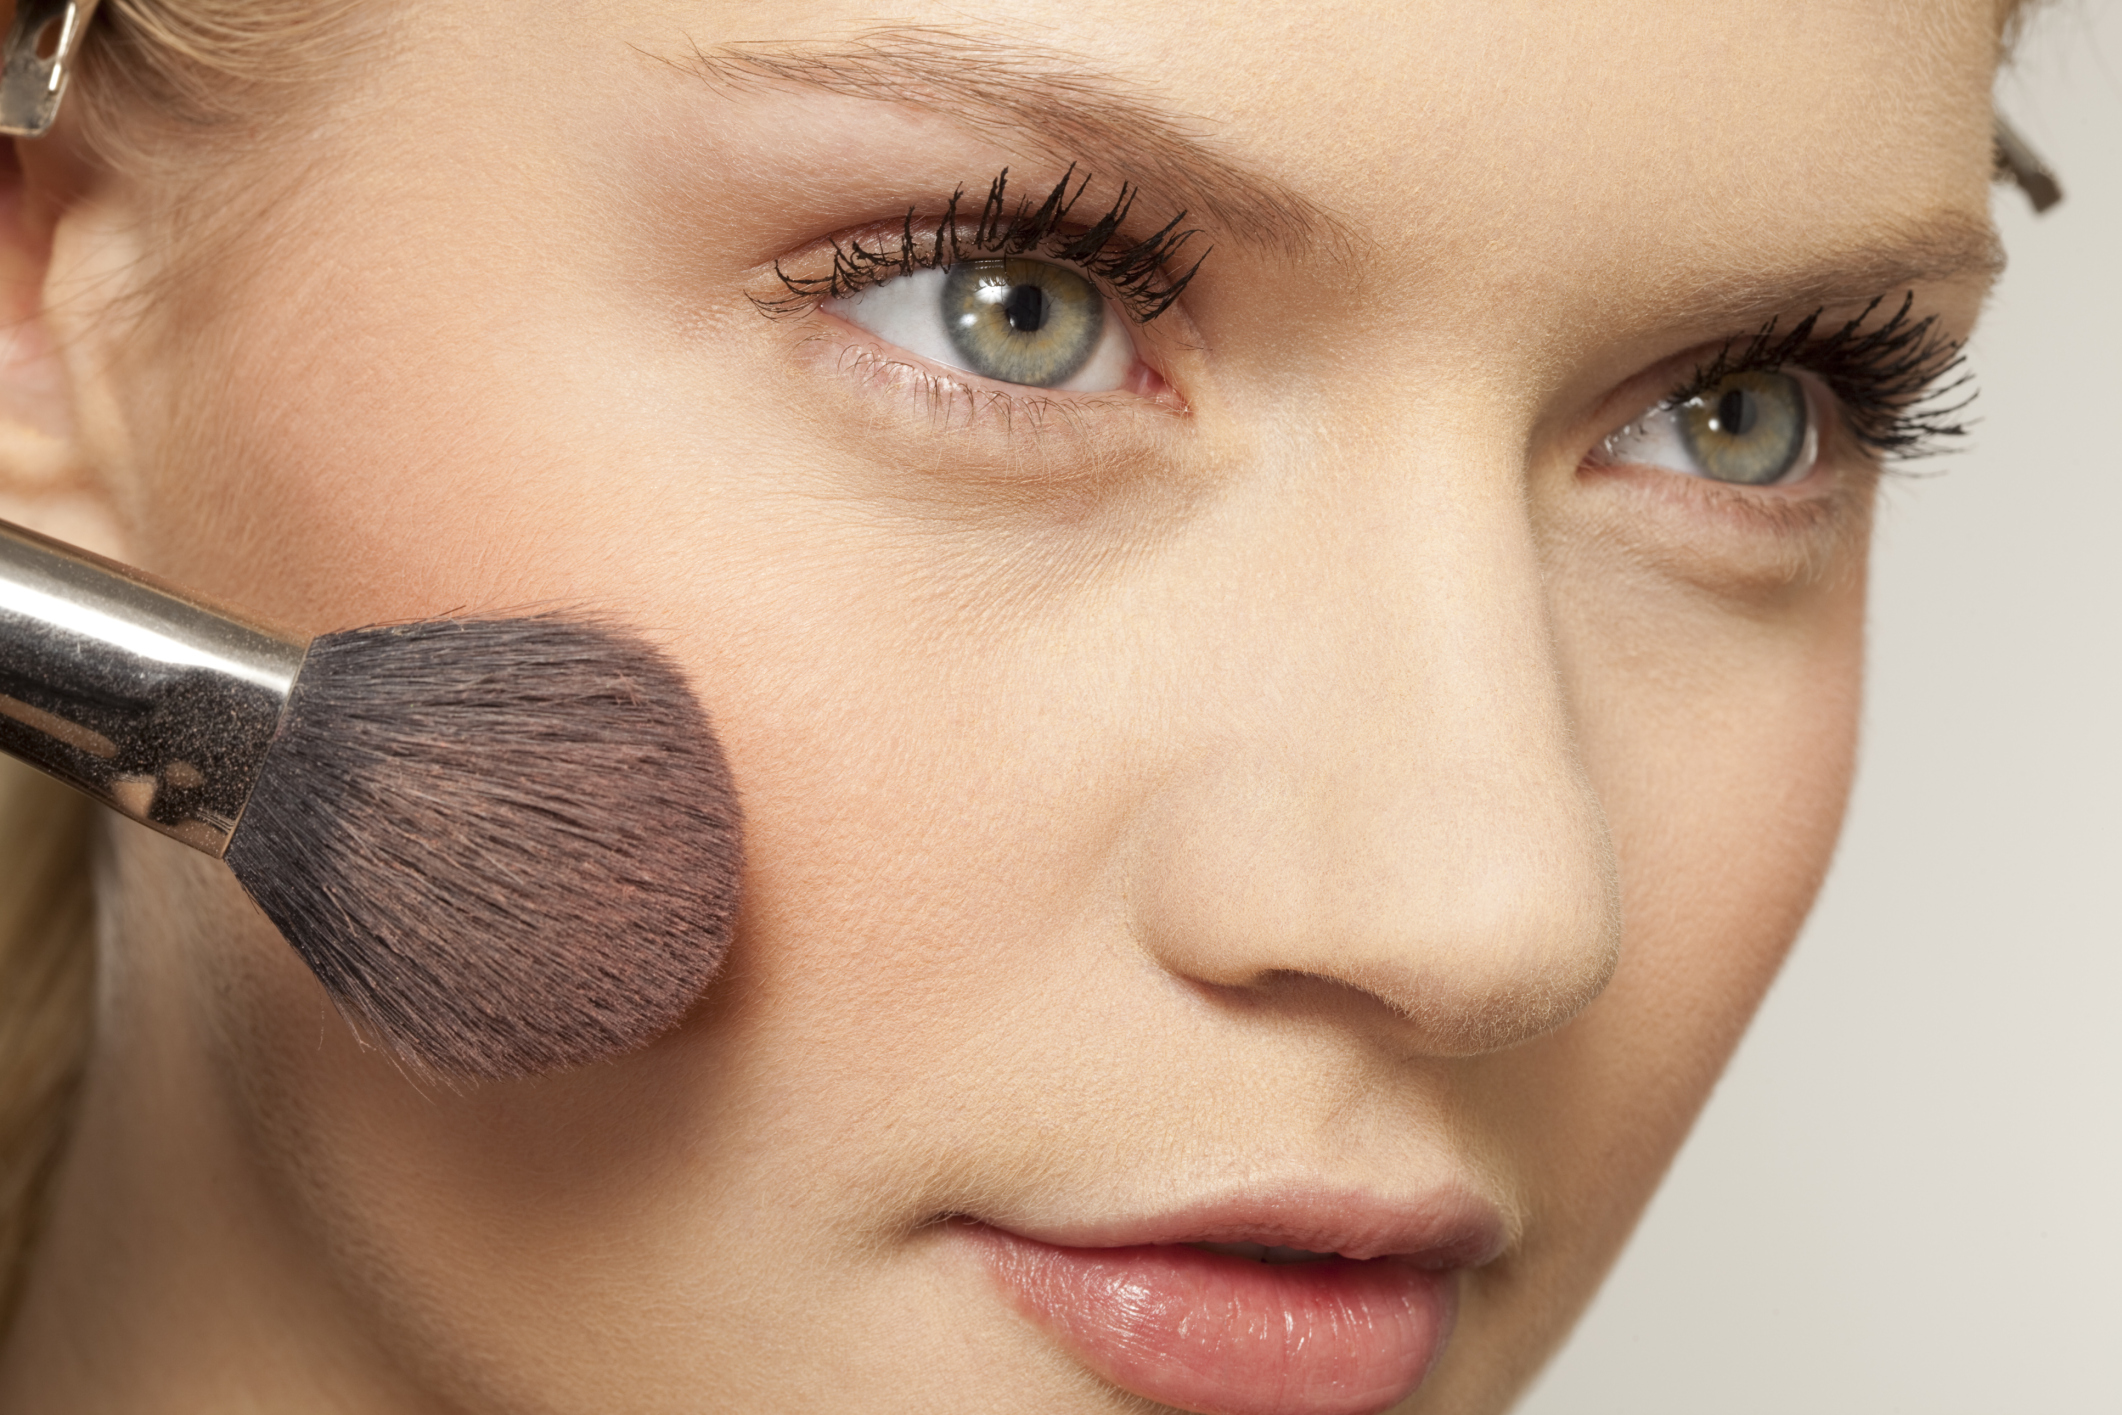 Schön bepinselt: Make-up-Pinsel reinigen